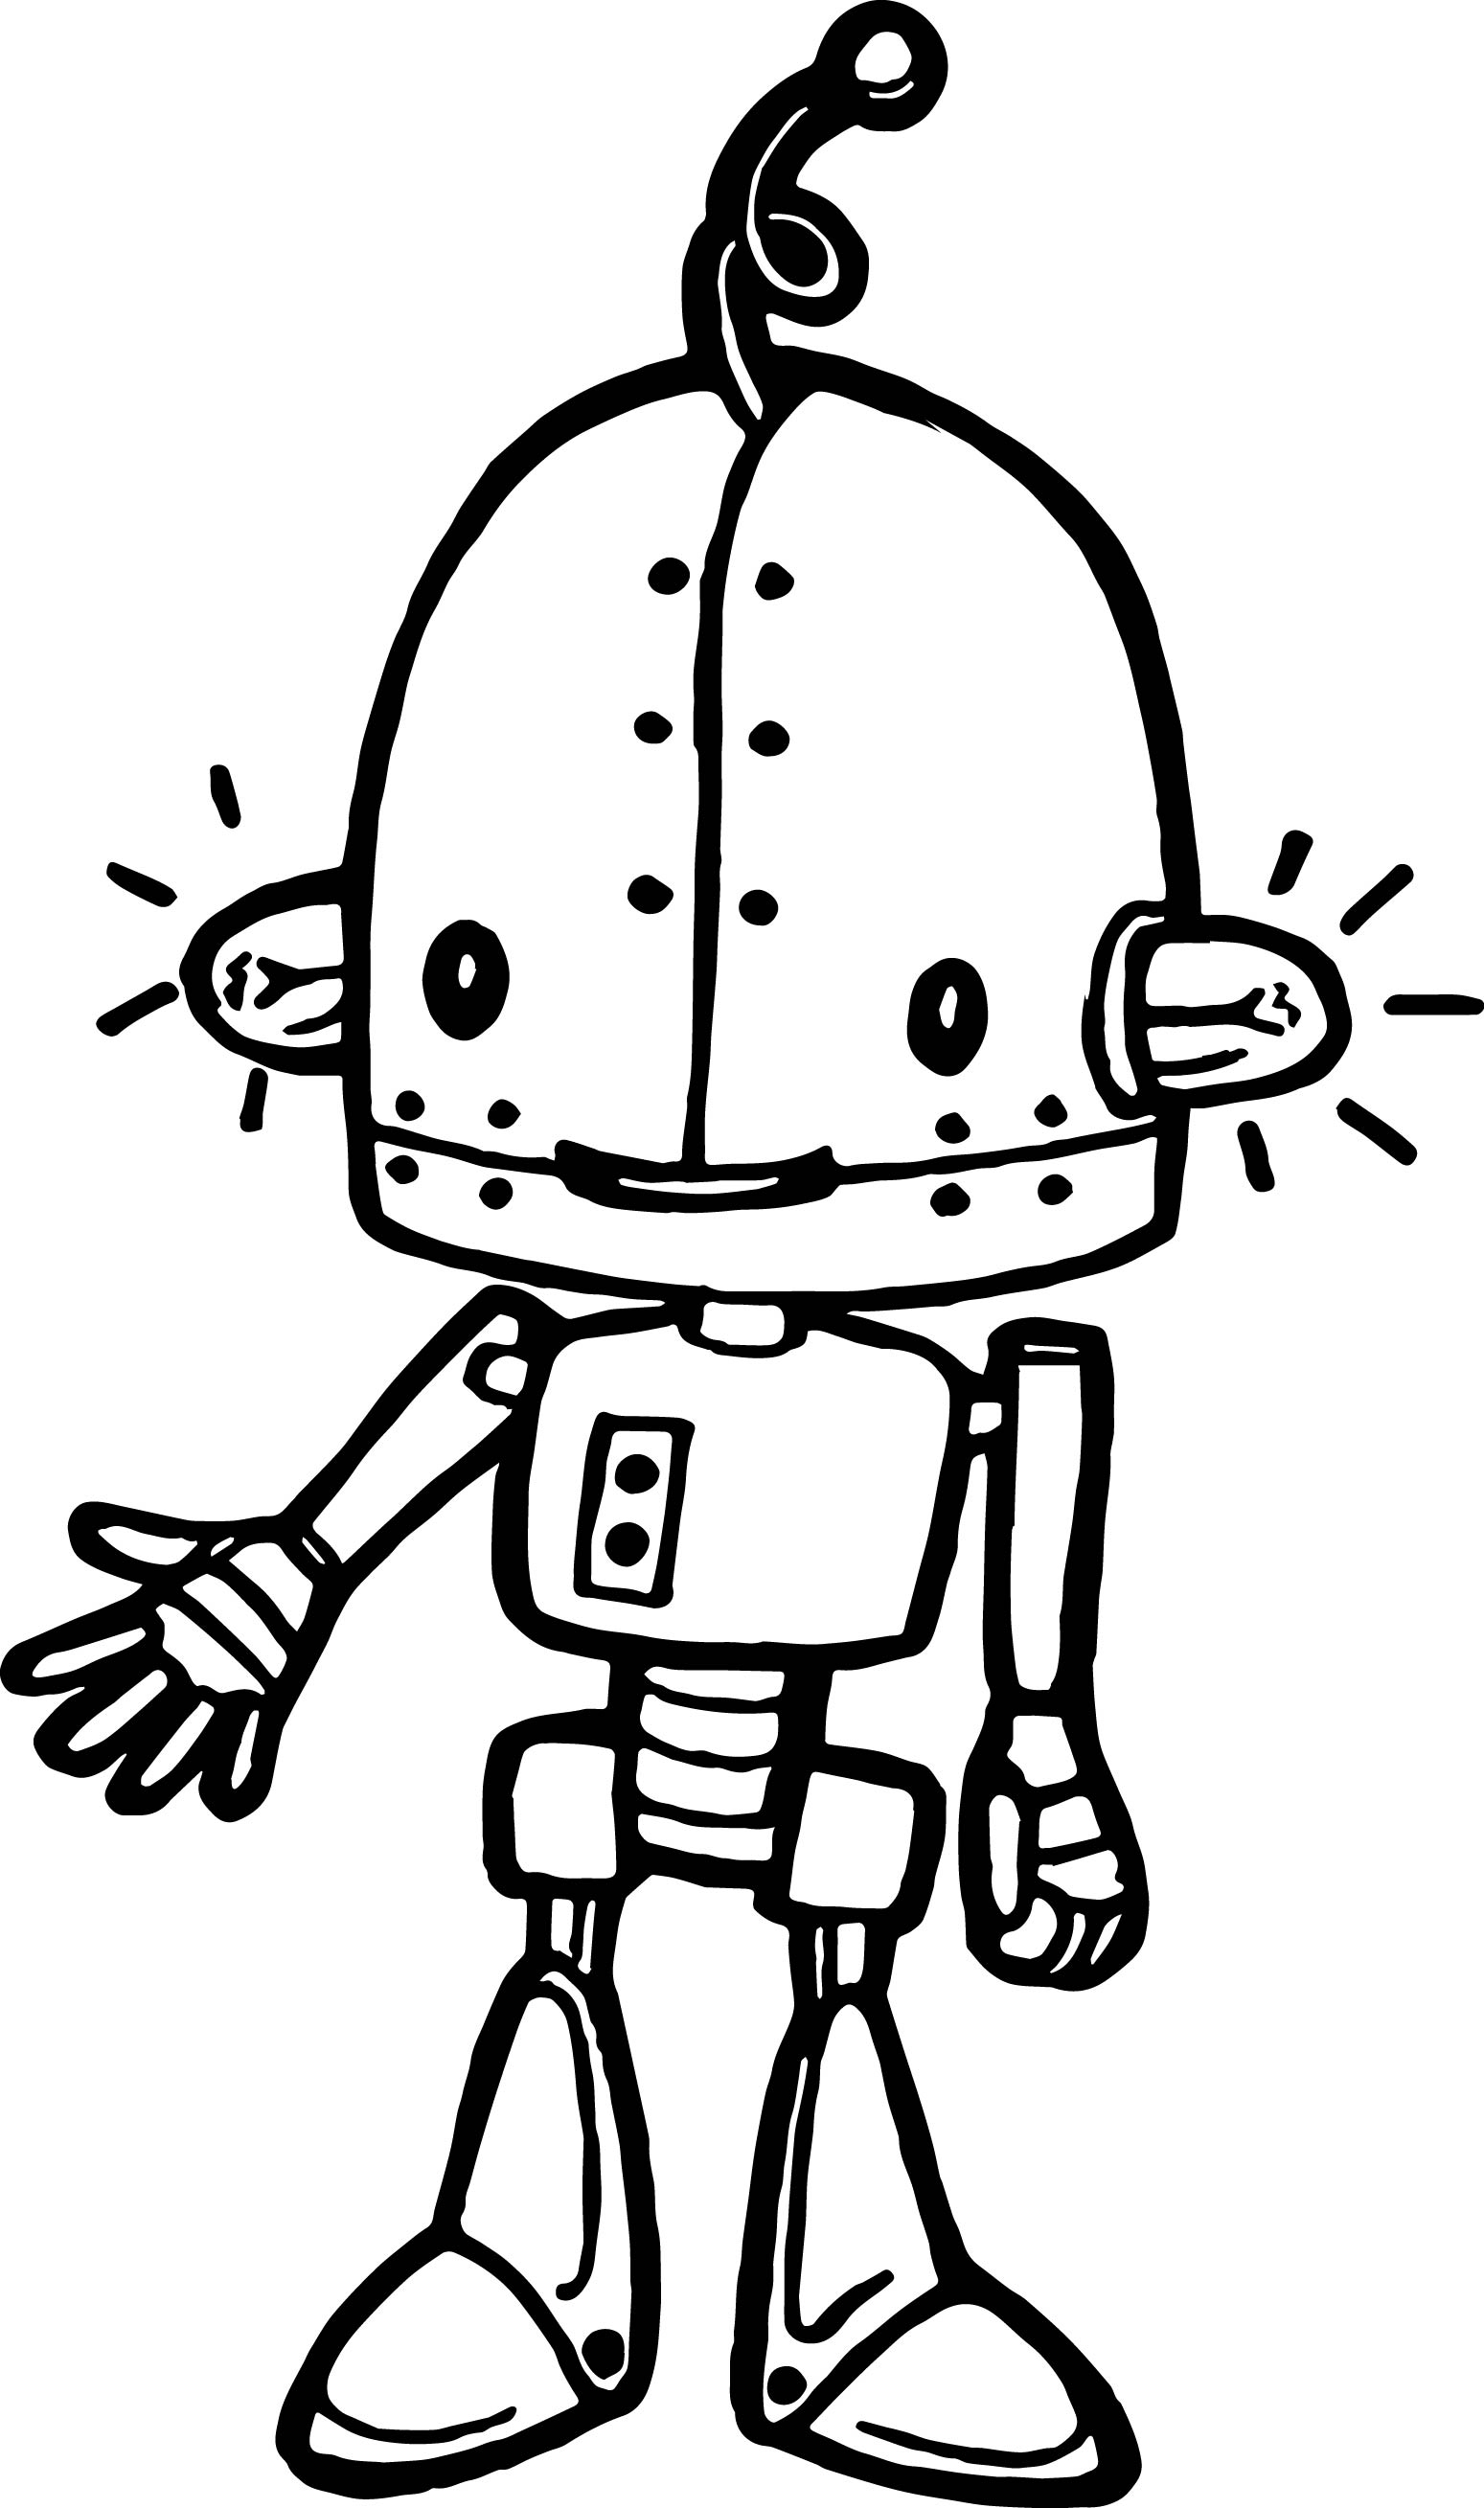 ampule cartoon robot coloring page wecoloringpage